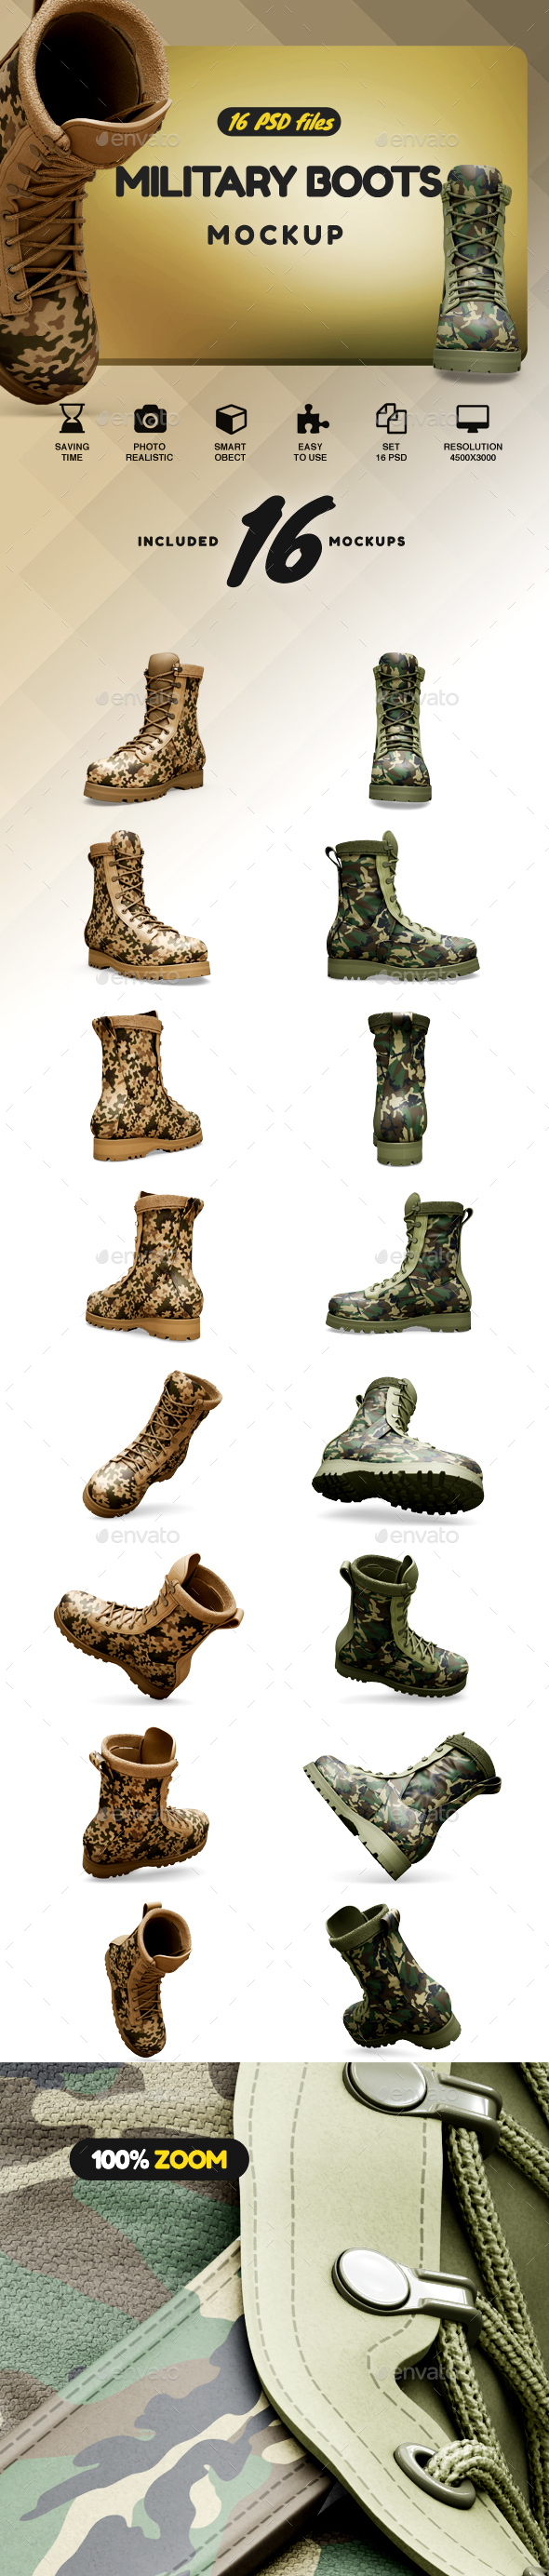 Military Boots Mockup - Product Mock-Ups Graphics